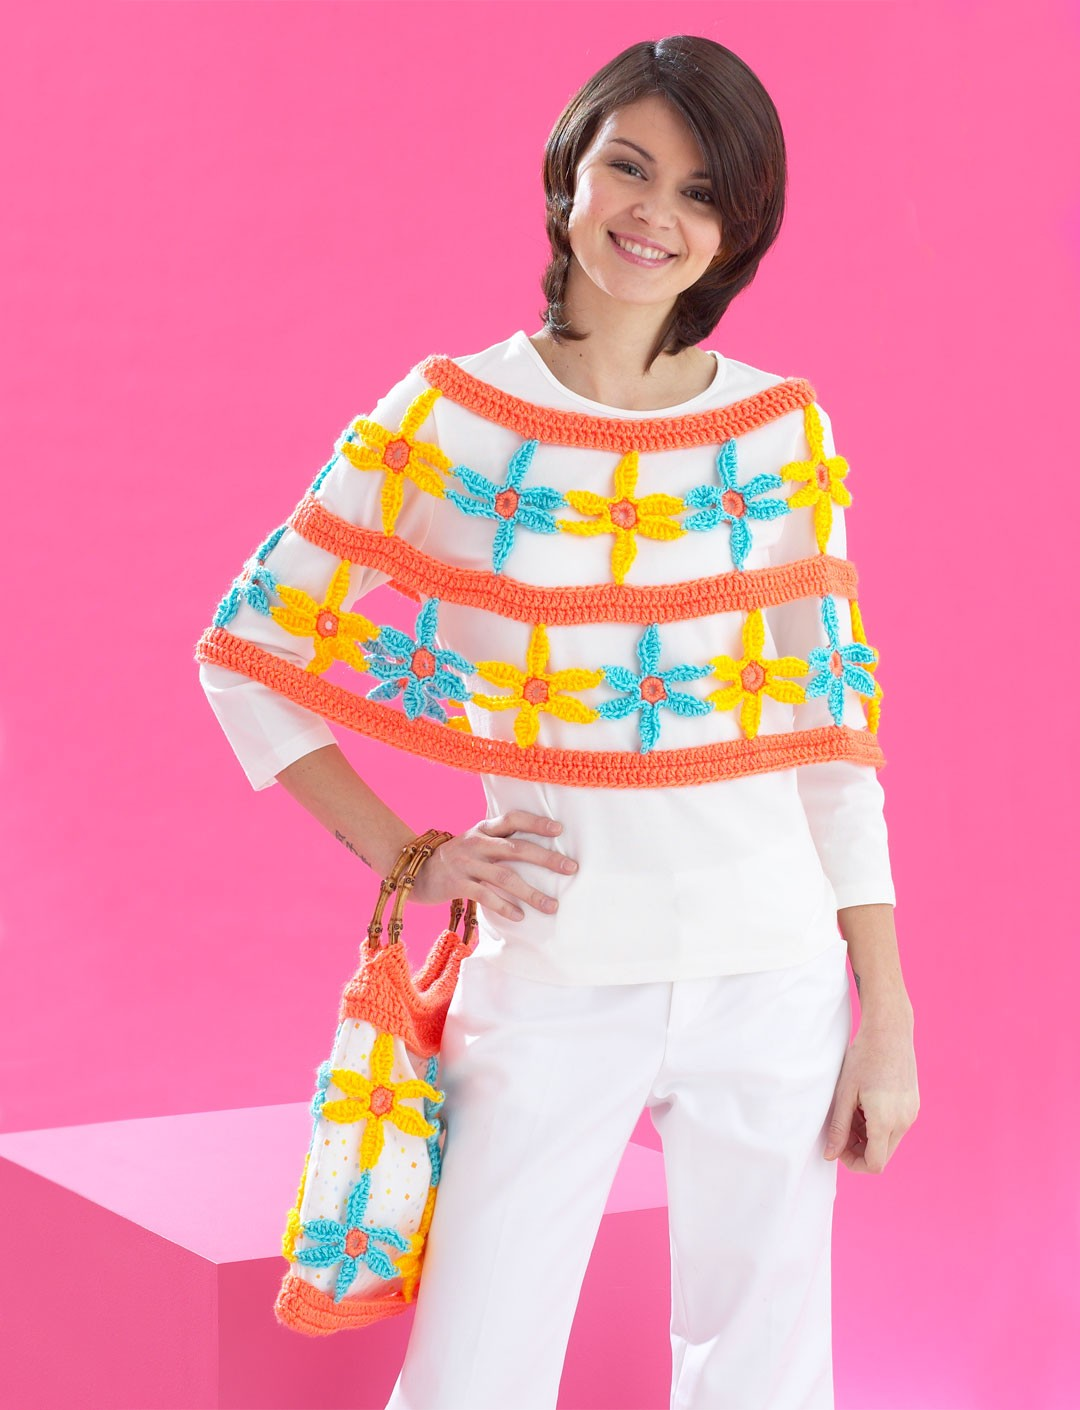 Daisy Chain Poncho and Bag